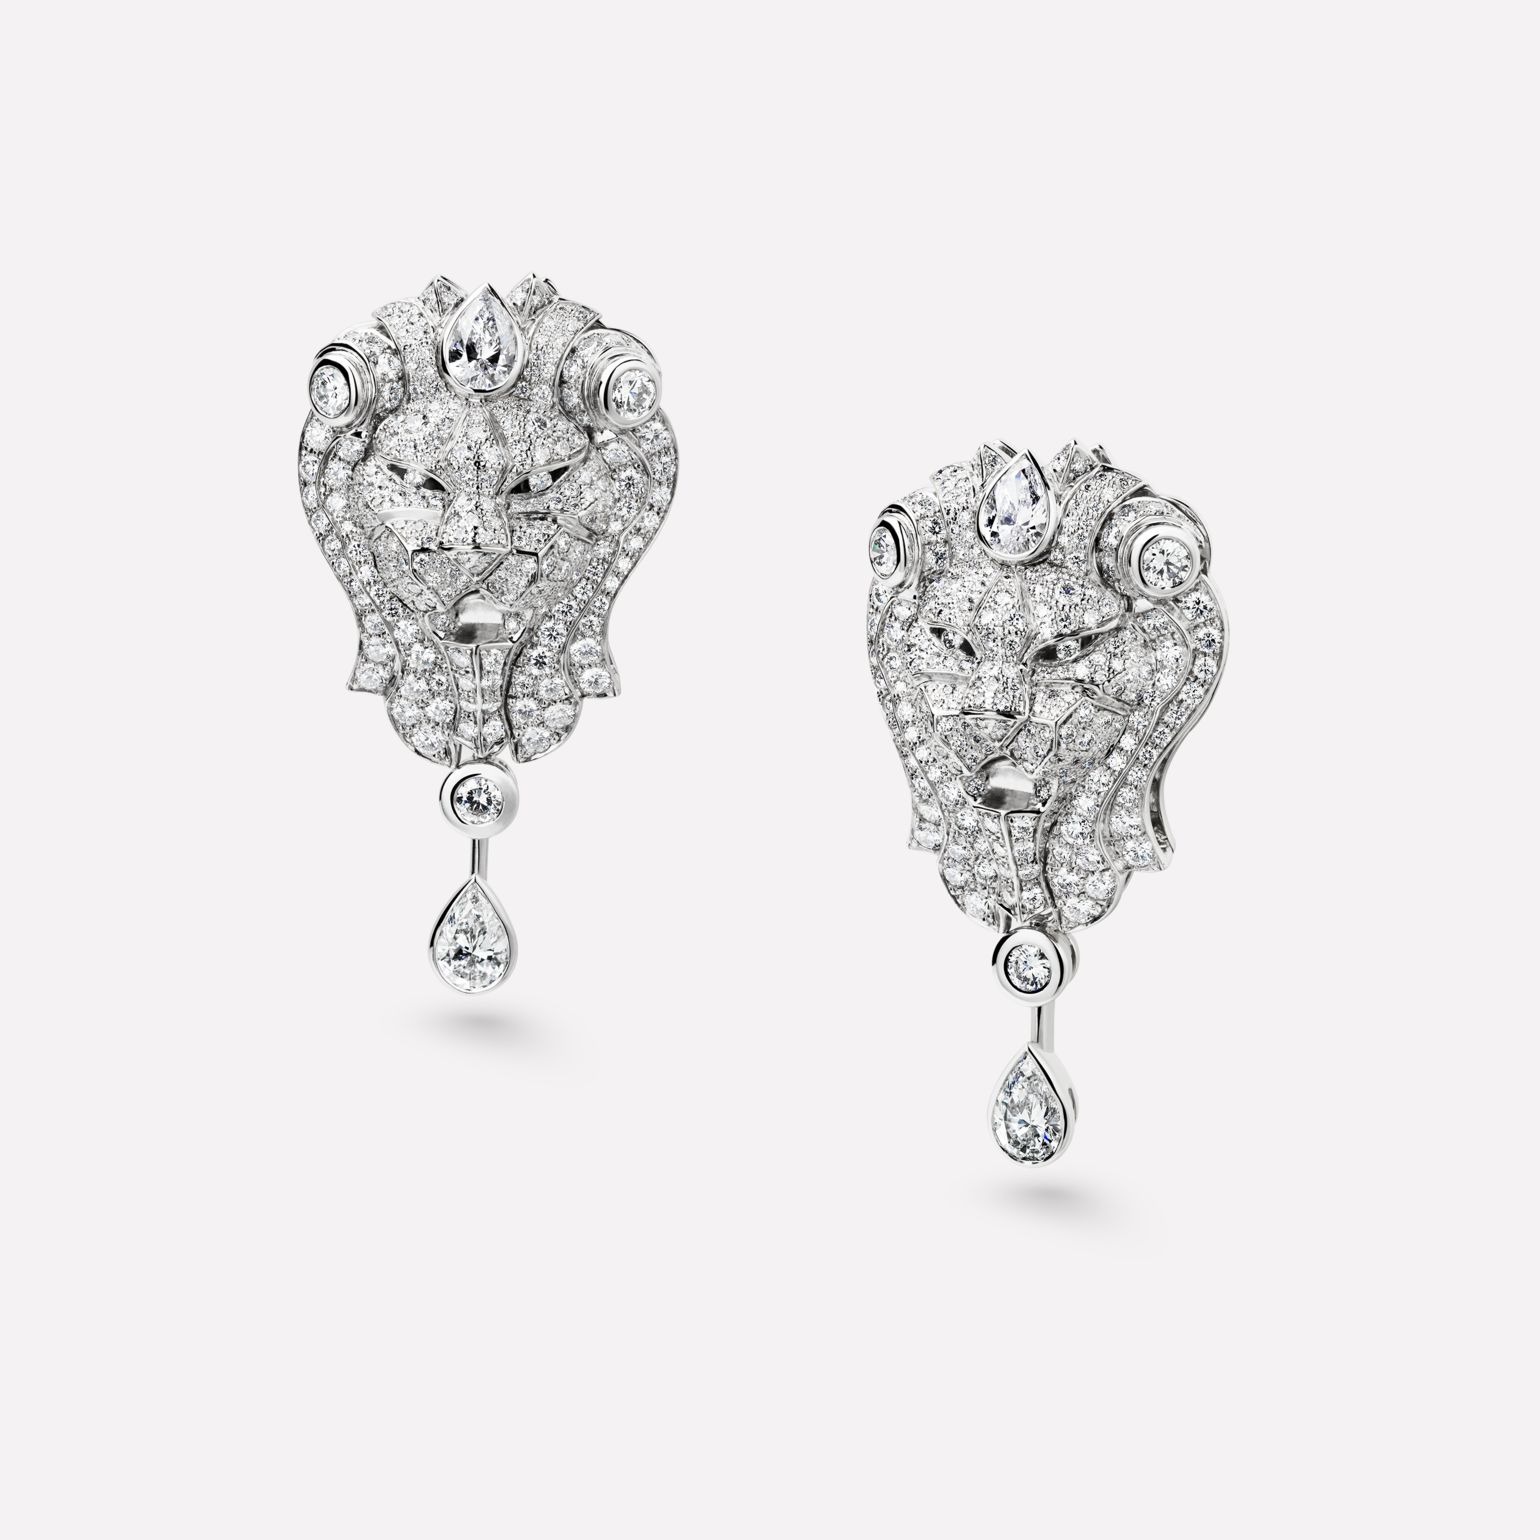 Sous le Signe du Lion earrings Lion earrings in 18K white gold and diamonds with center diamonds